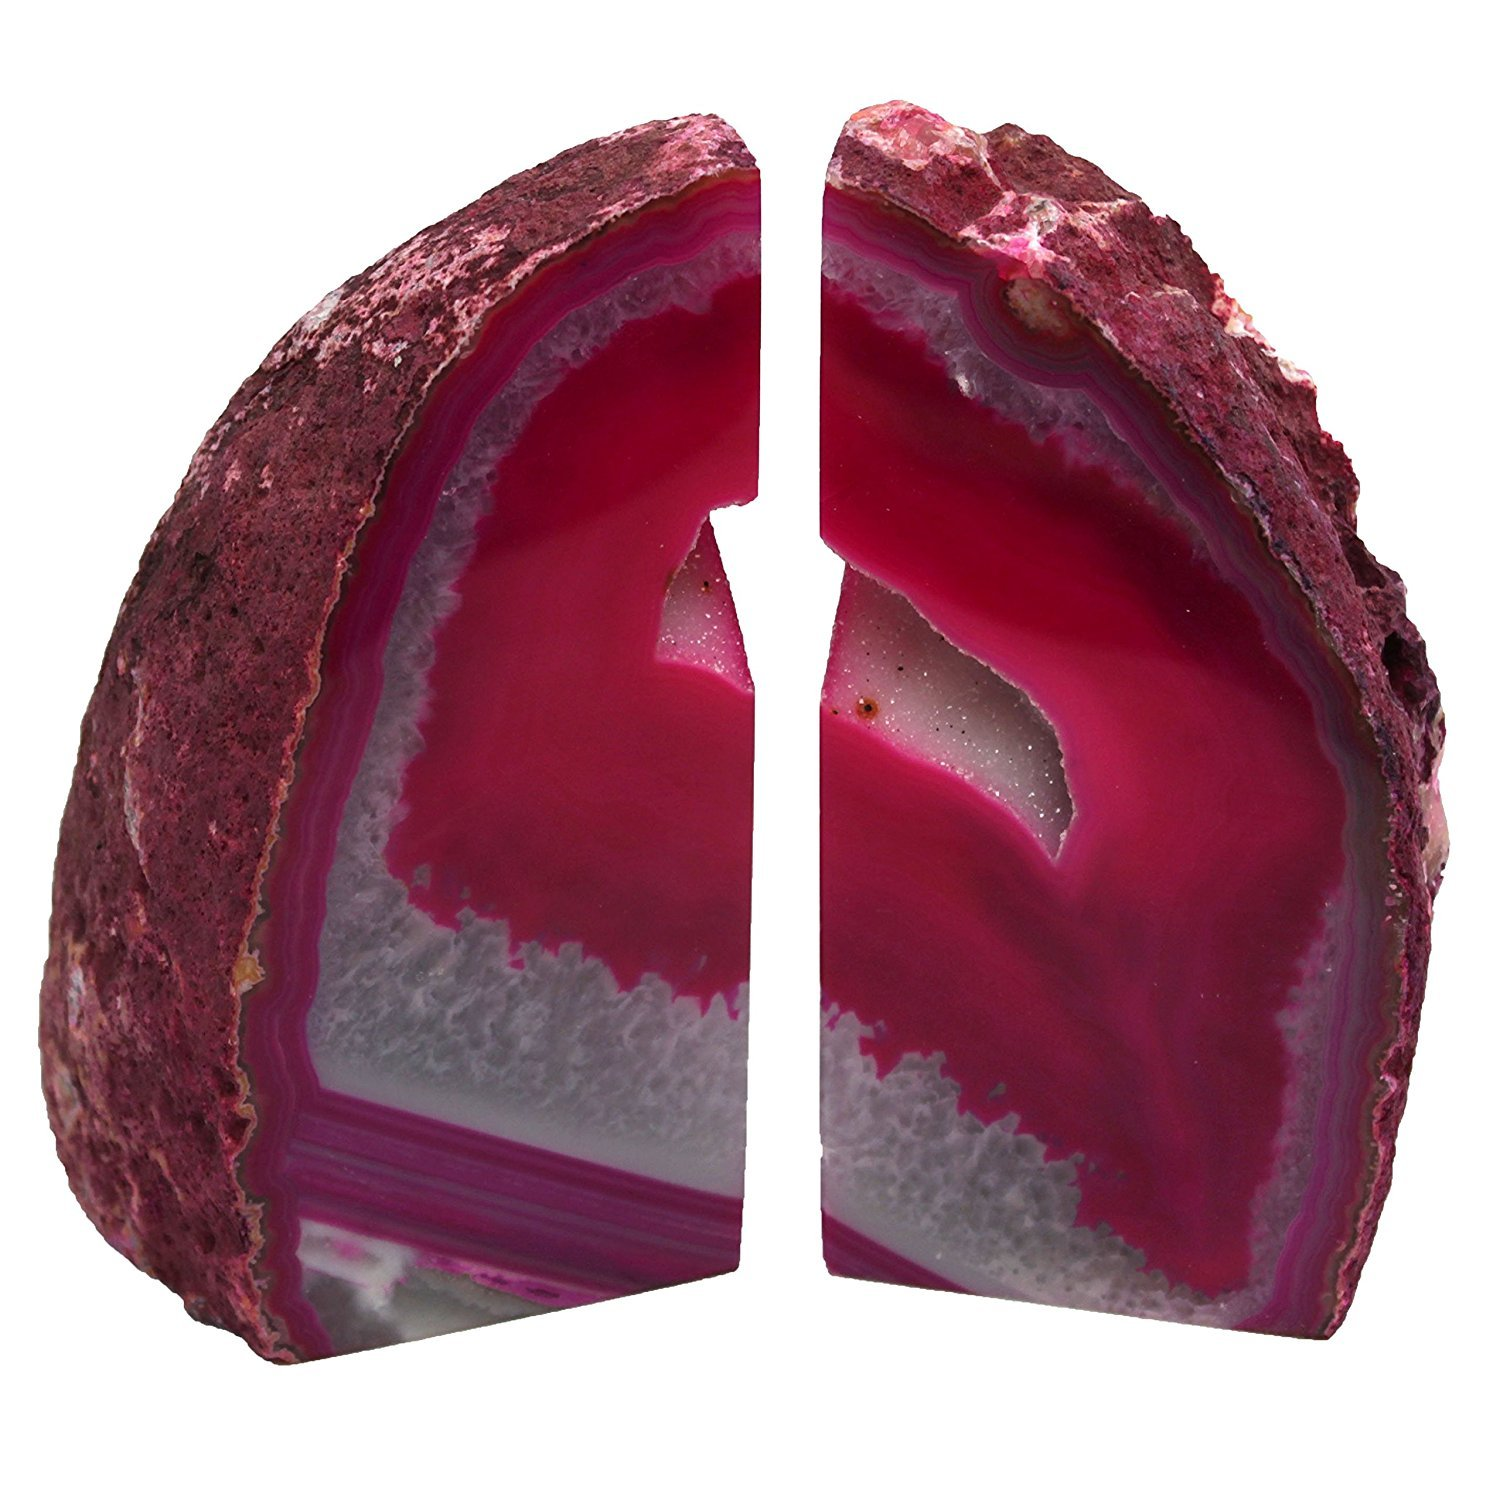 DIA Sold As Shown: Pink Agate Bookends Mid Size (PI4) by LE